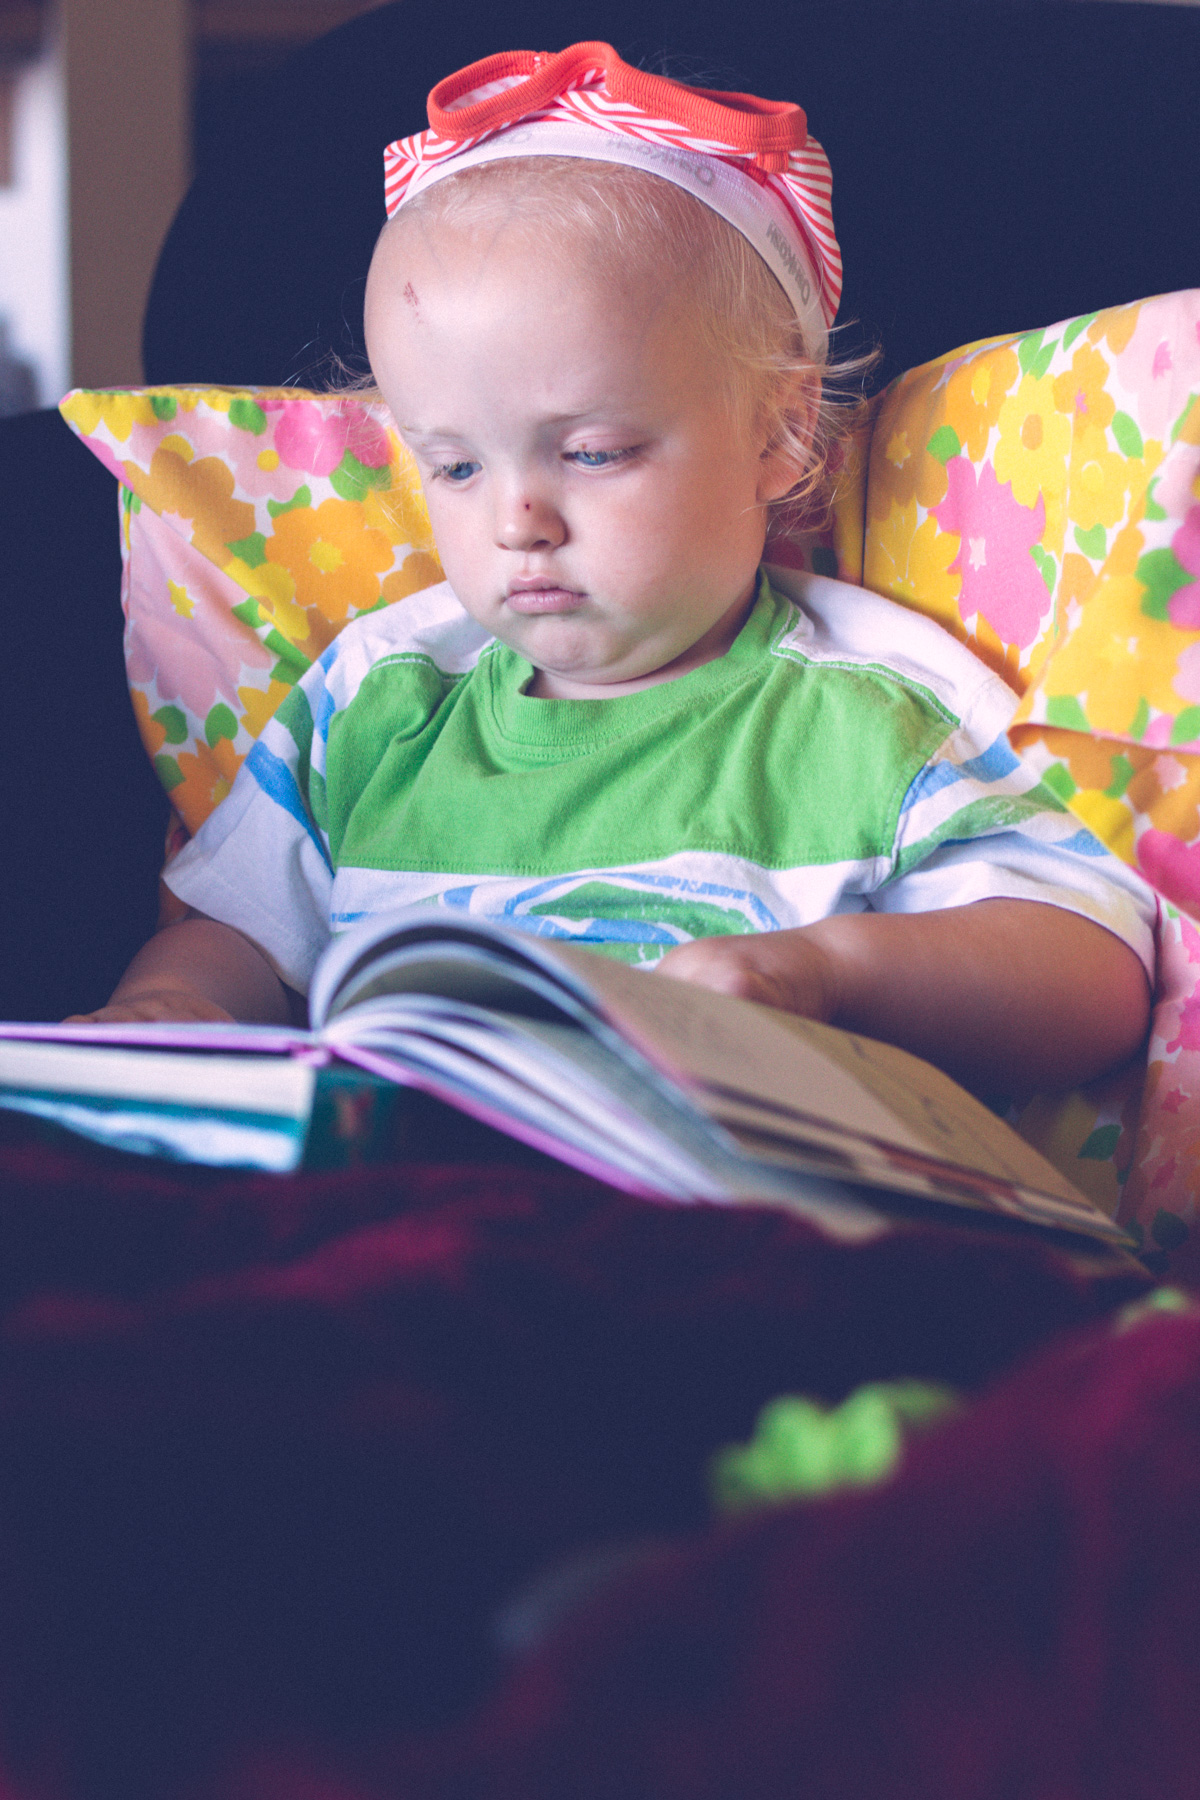 Blond boy reading book on couch while wearing underwear on his head